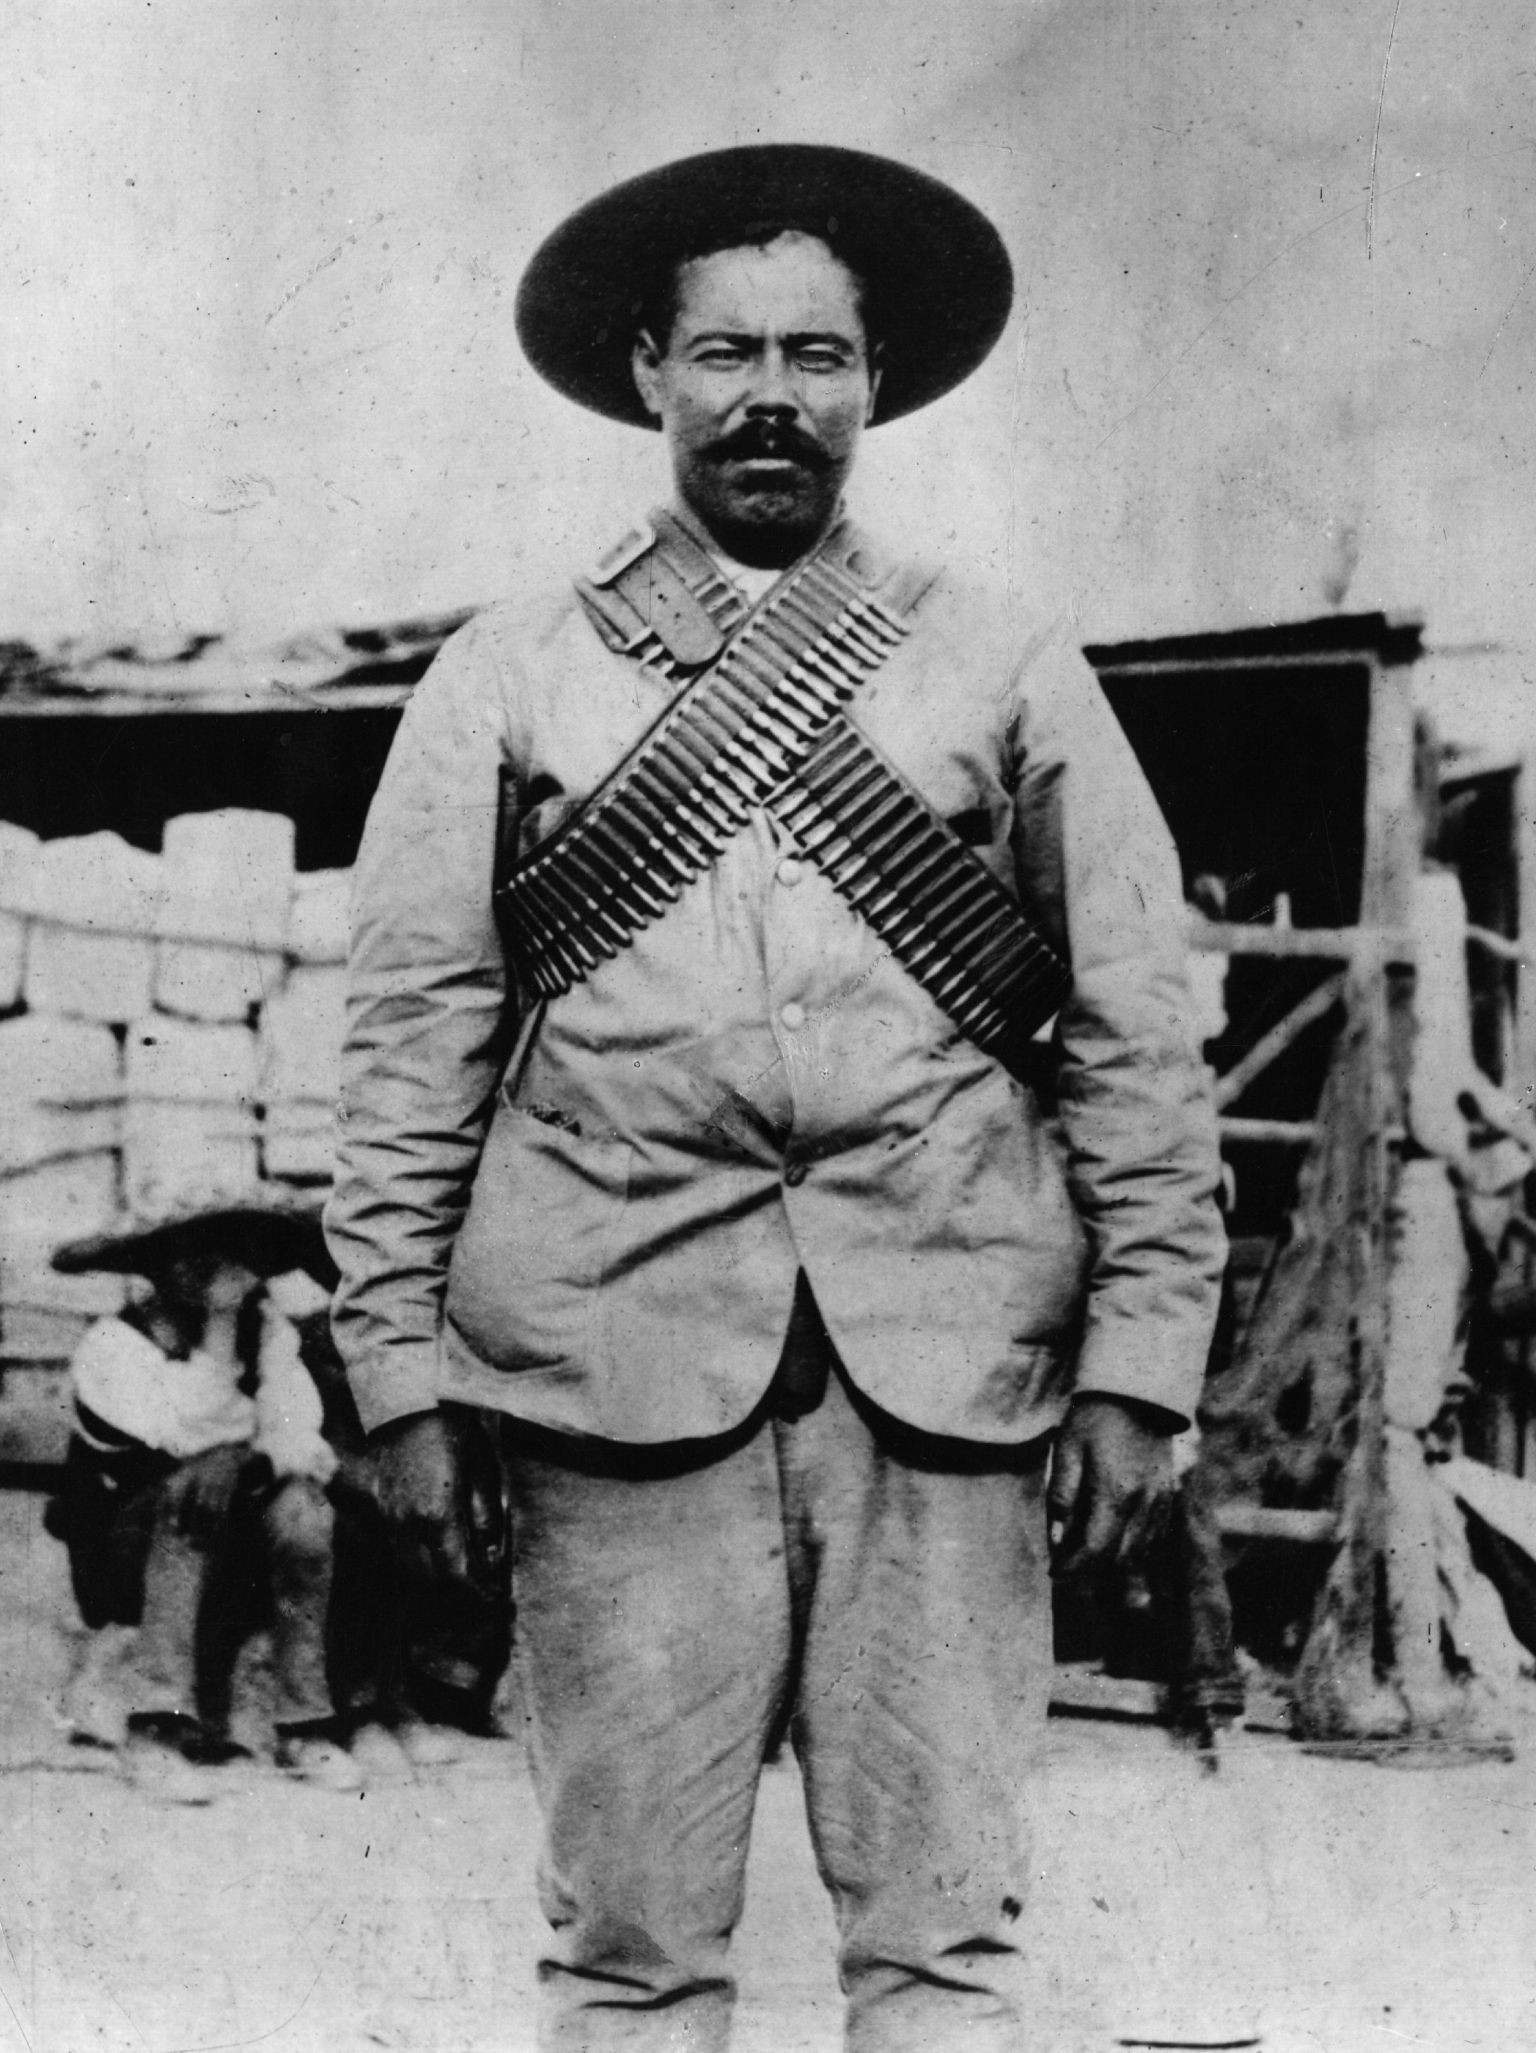 Discovery Channel Hopes To Reveal Who Killed Pancho Villa Pancho